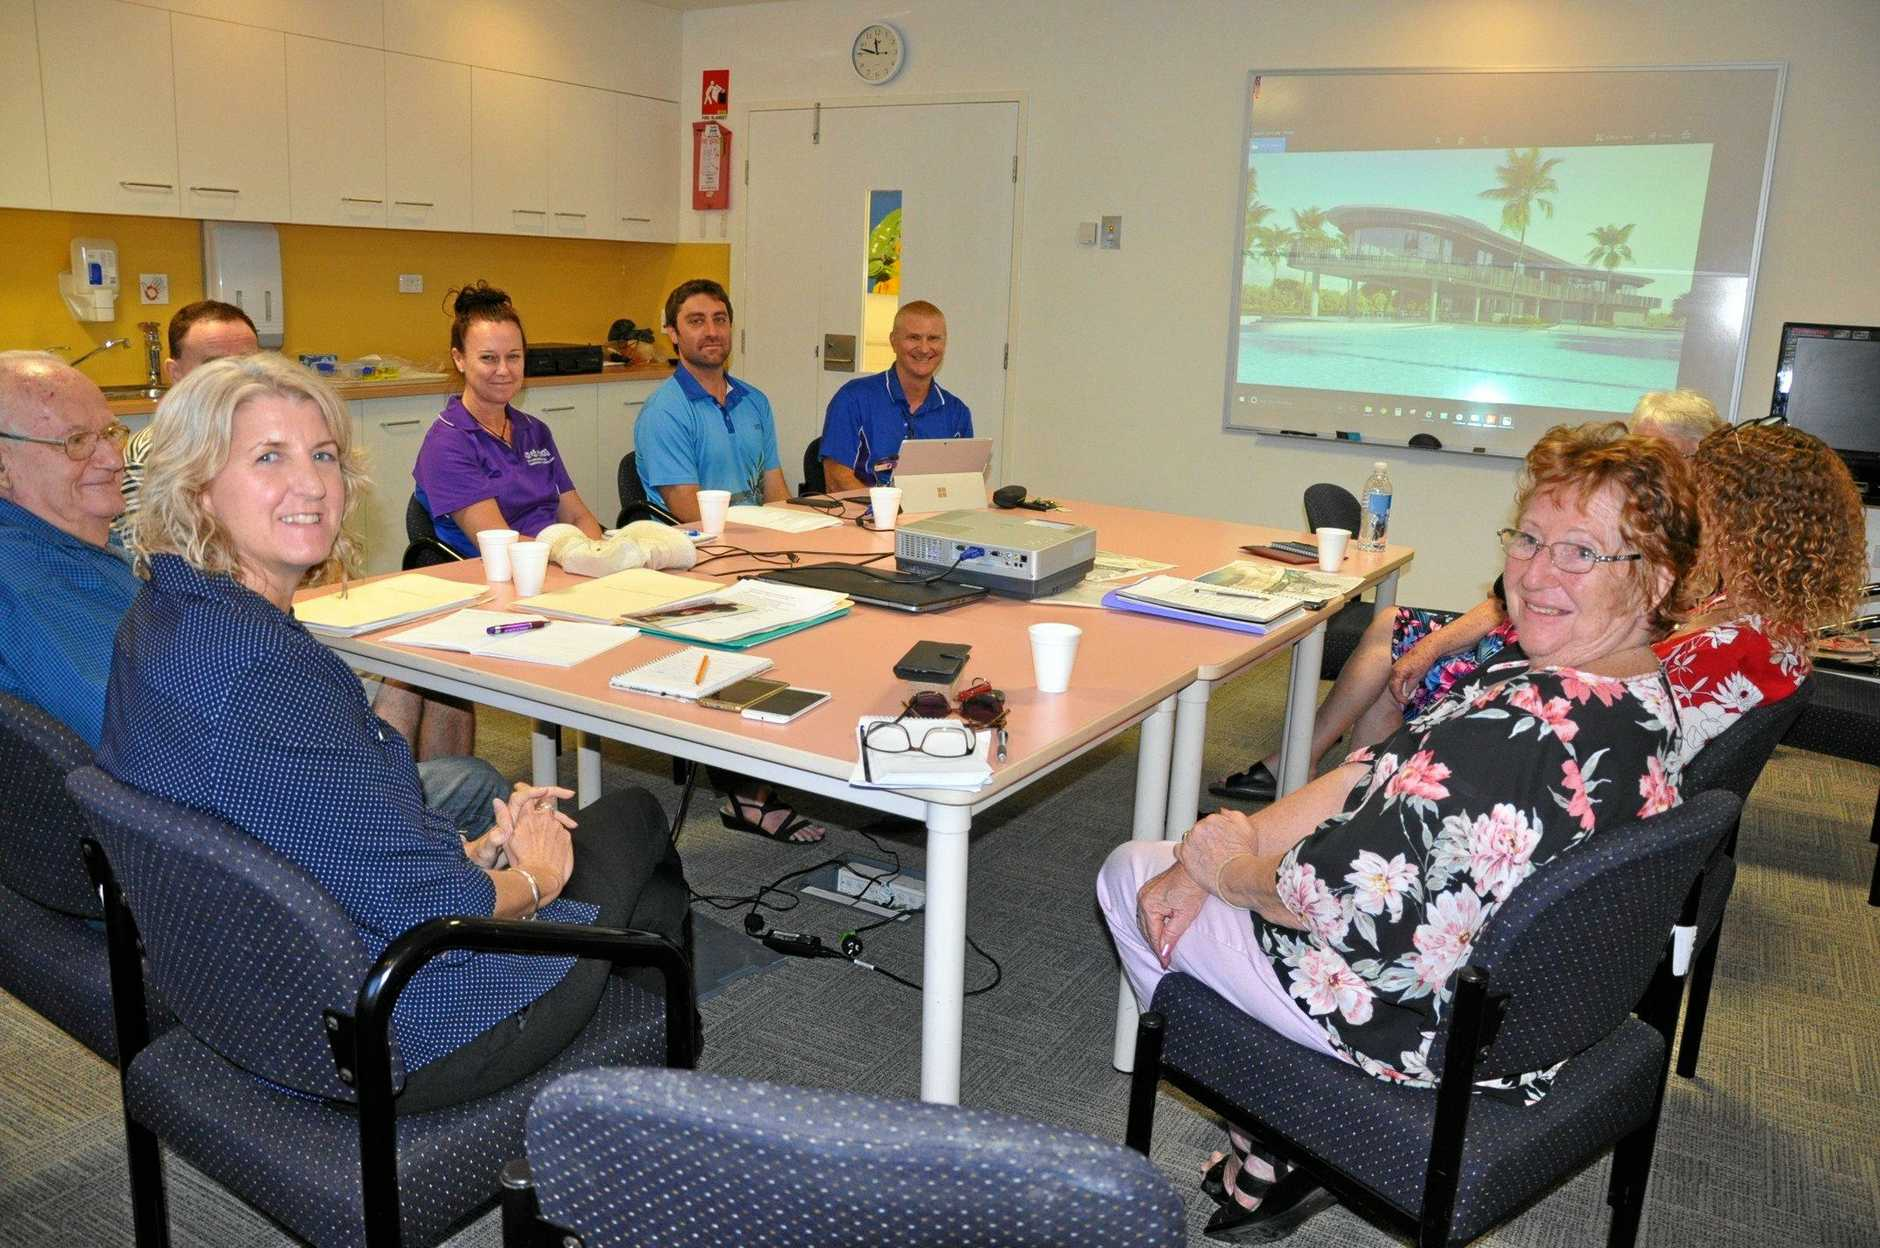 The Cap Coast Community Access and Equity Group met last week